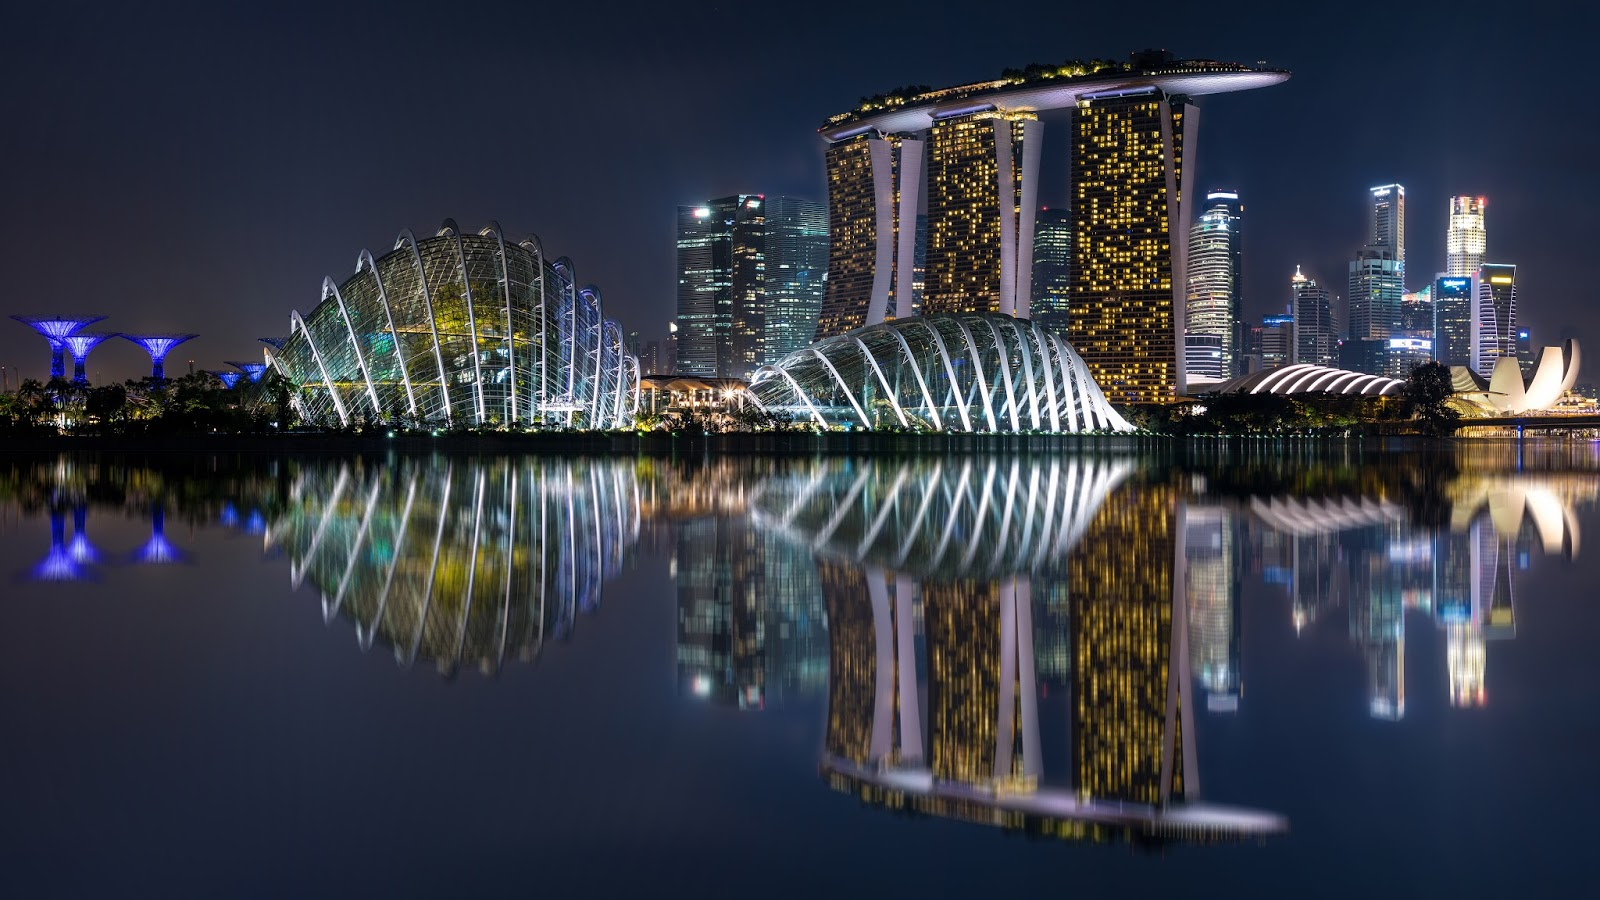 Singapore wallpaper images